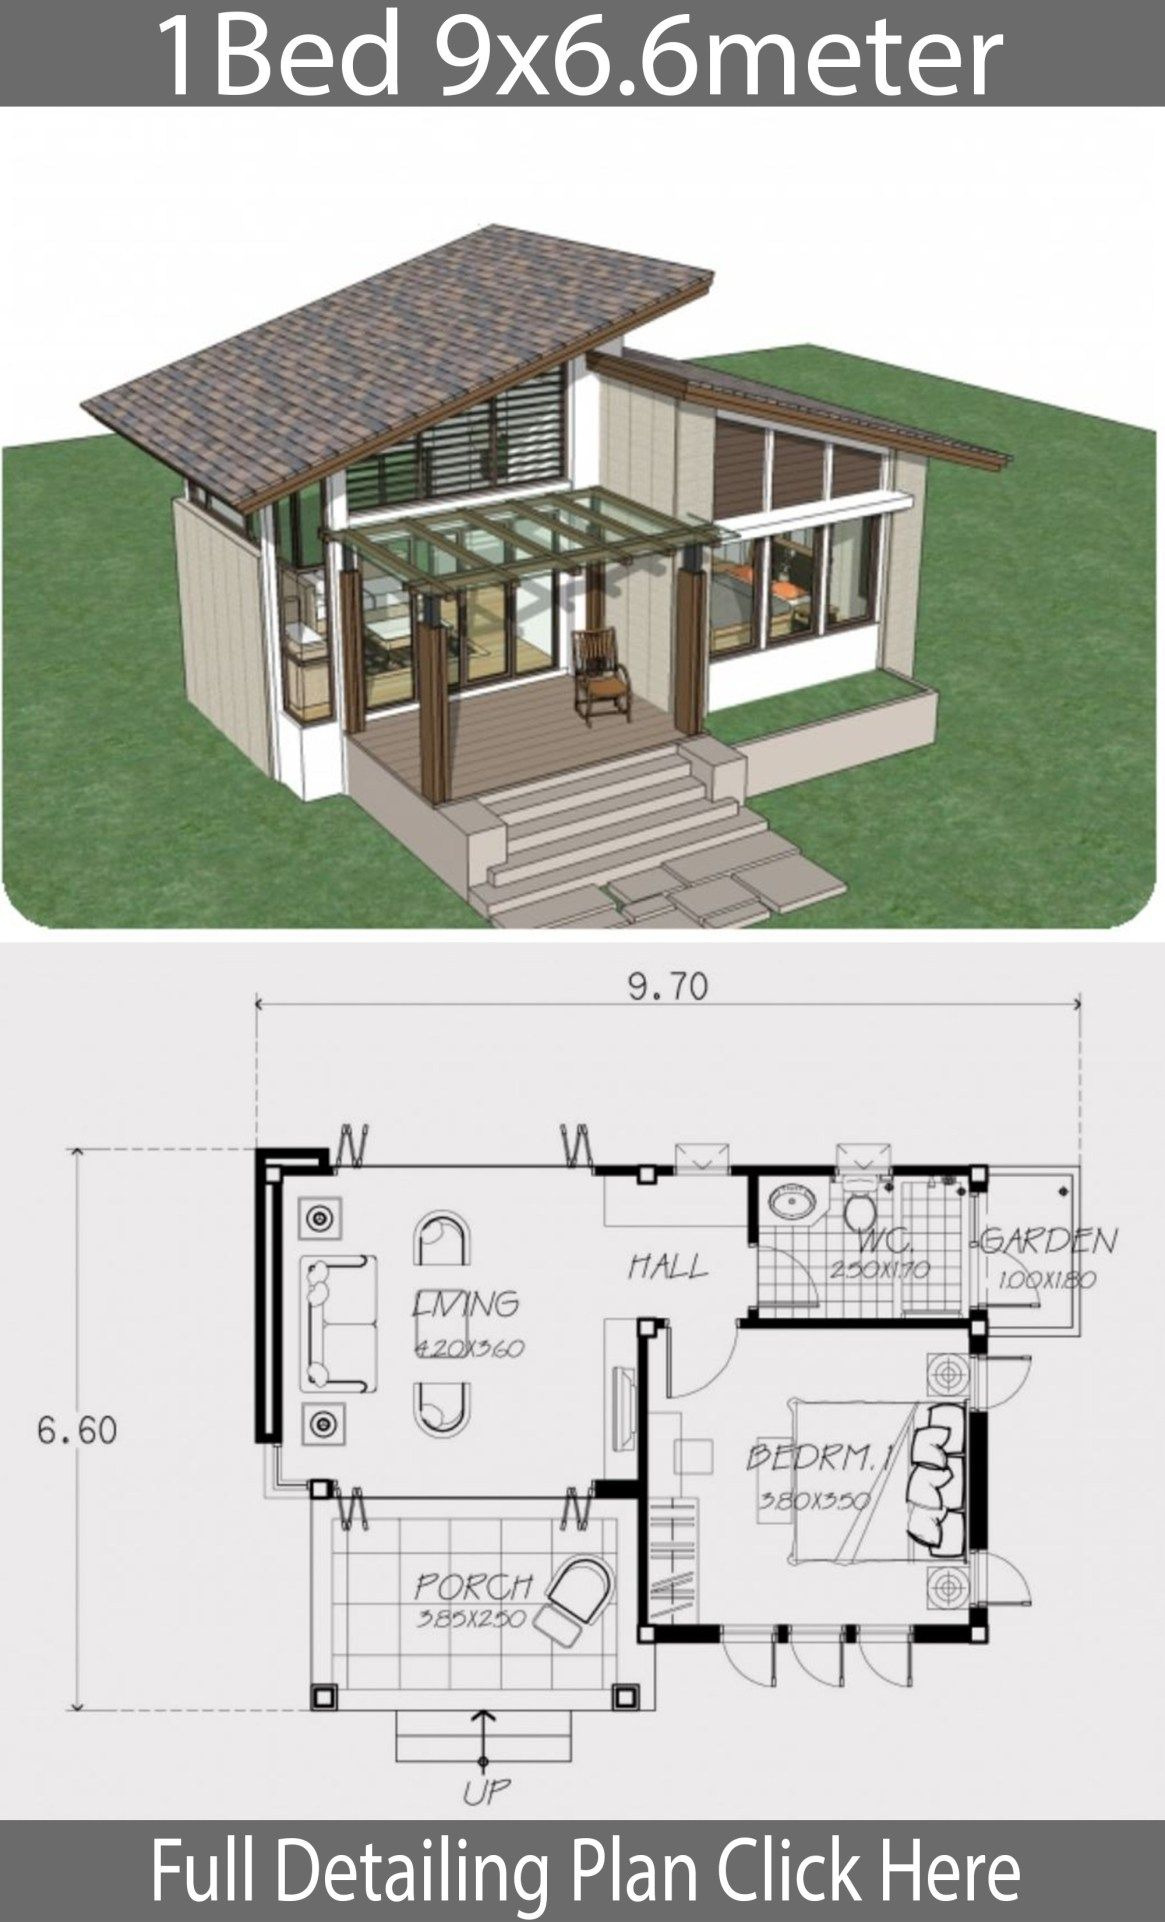 Design Small House Plans Luxury Small Home Design Plan 9x6 6m with One Bedroom